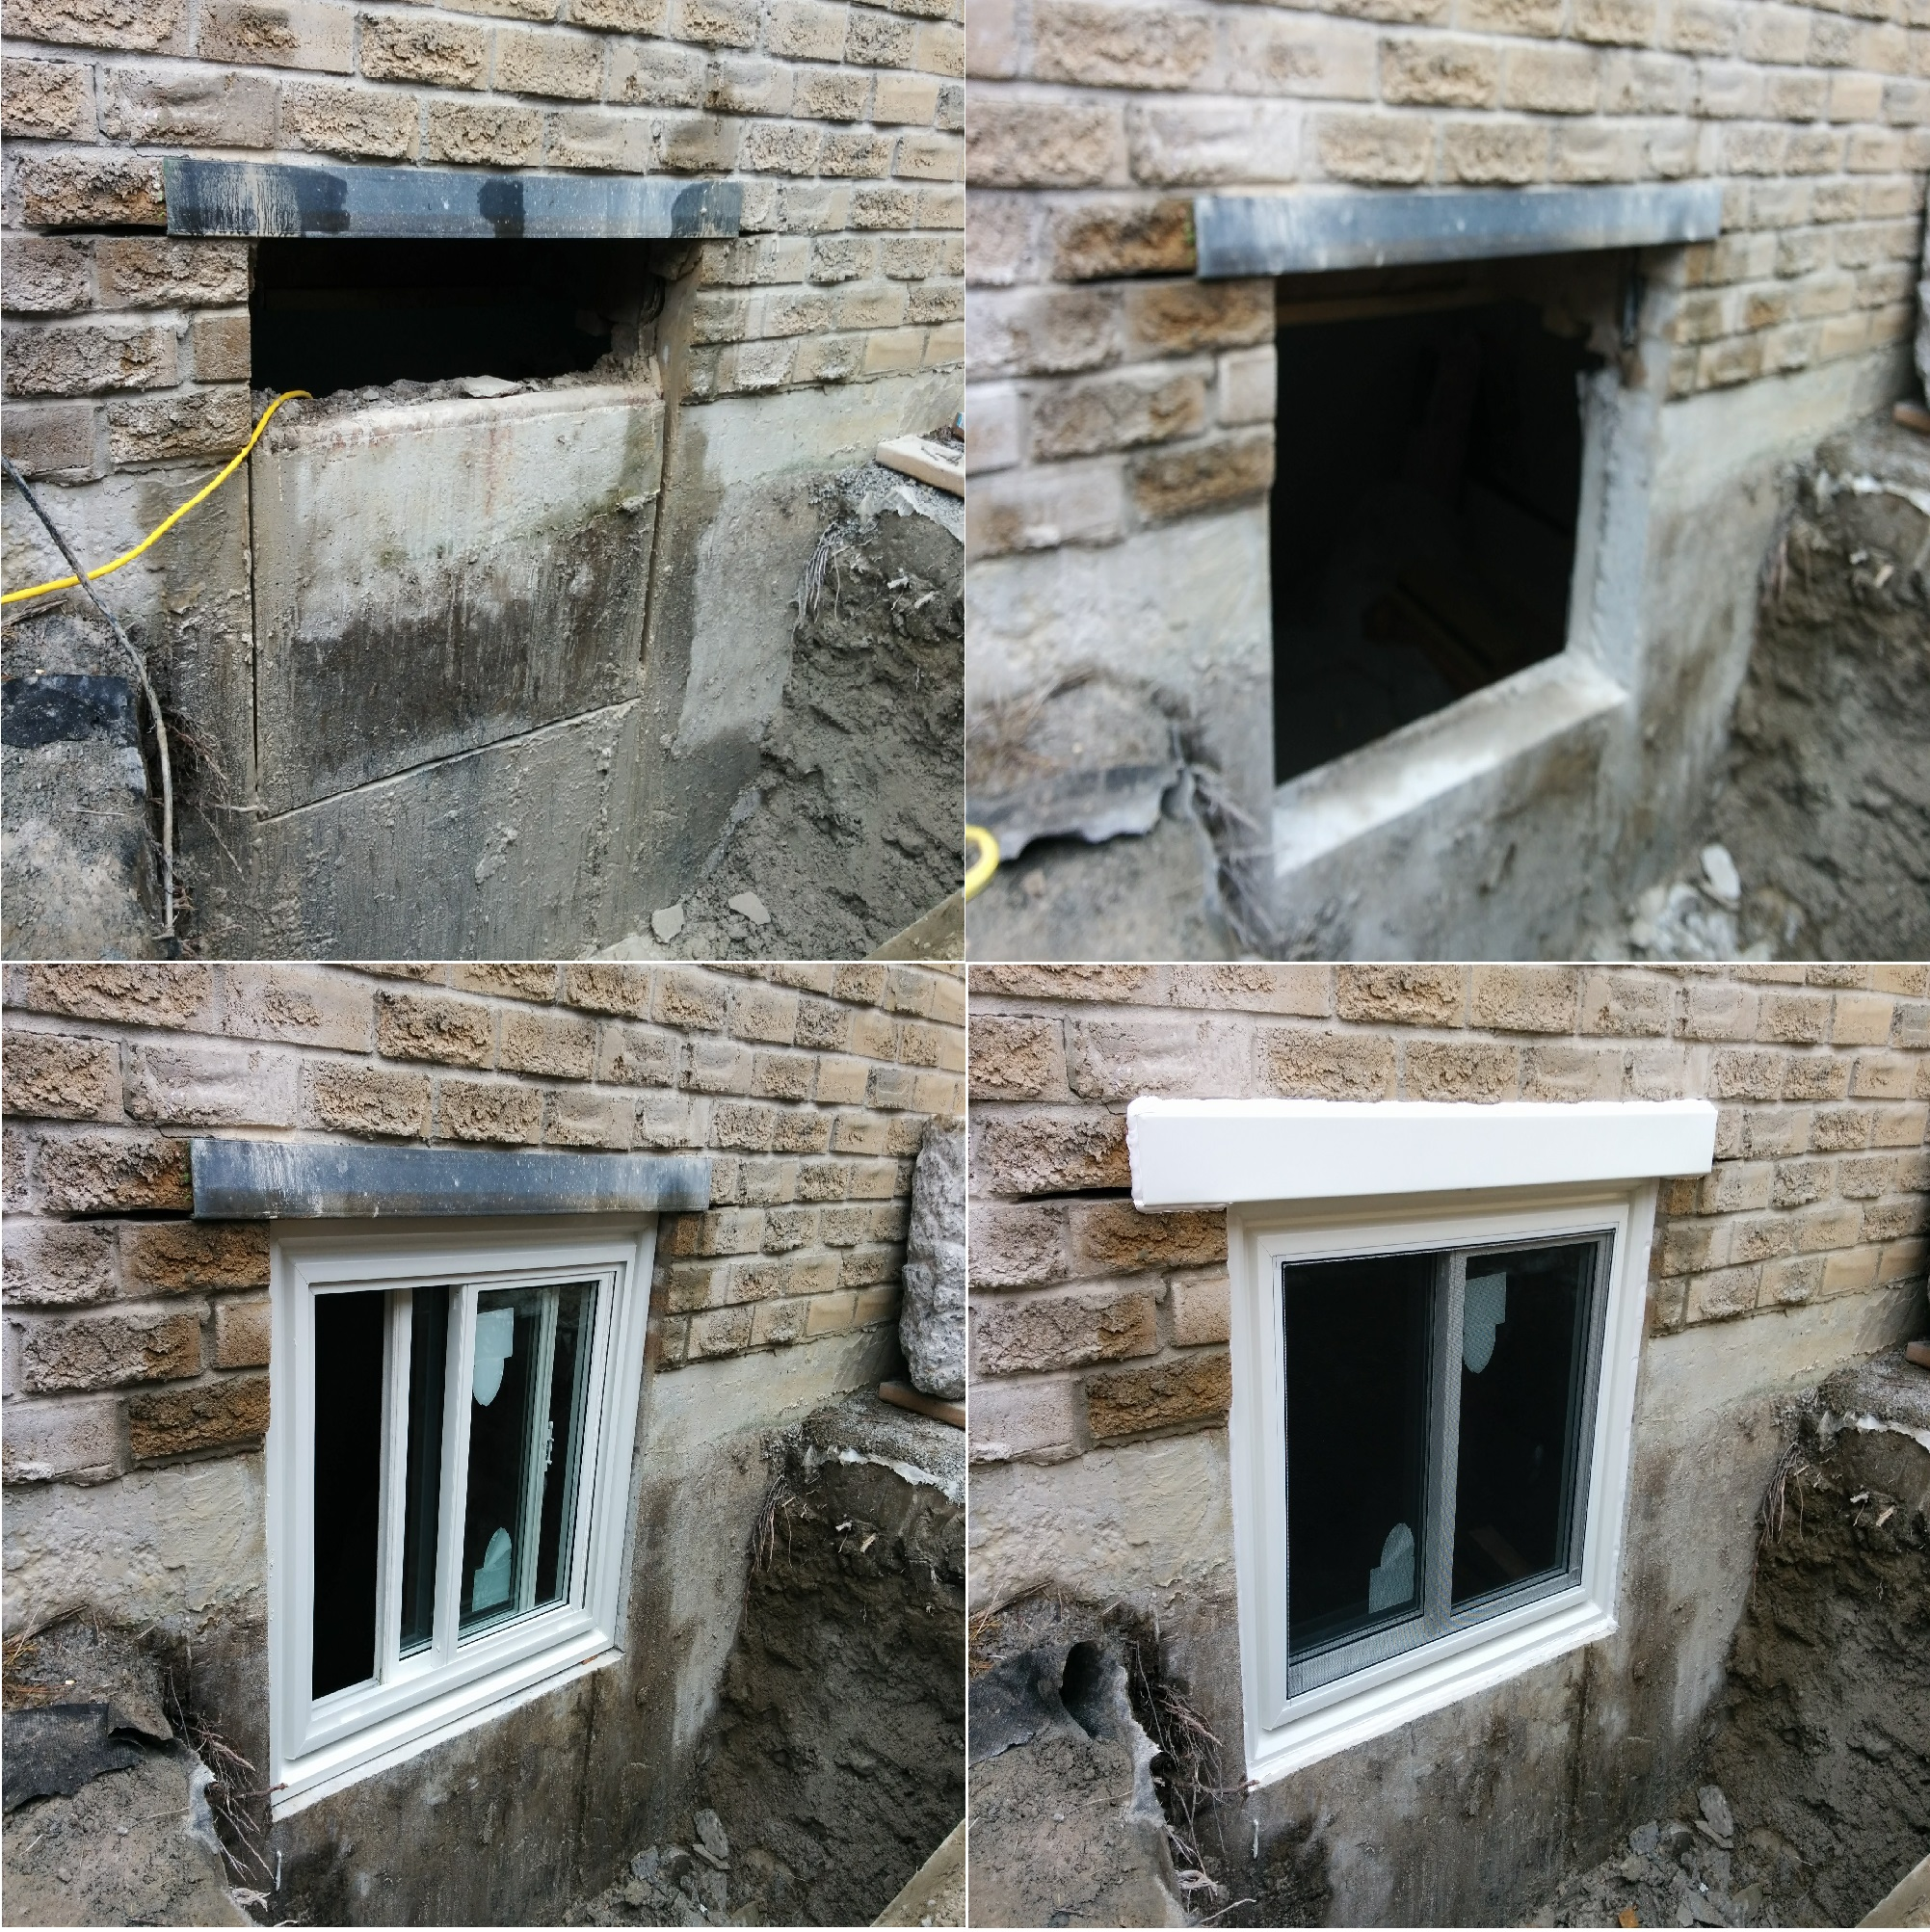 This job is egress basement window. Required to cut concrete foundation, cut brick, brick lintel installation, egress window installation, aluminum flashing capping.